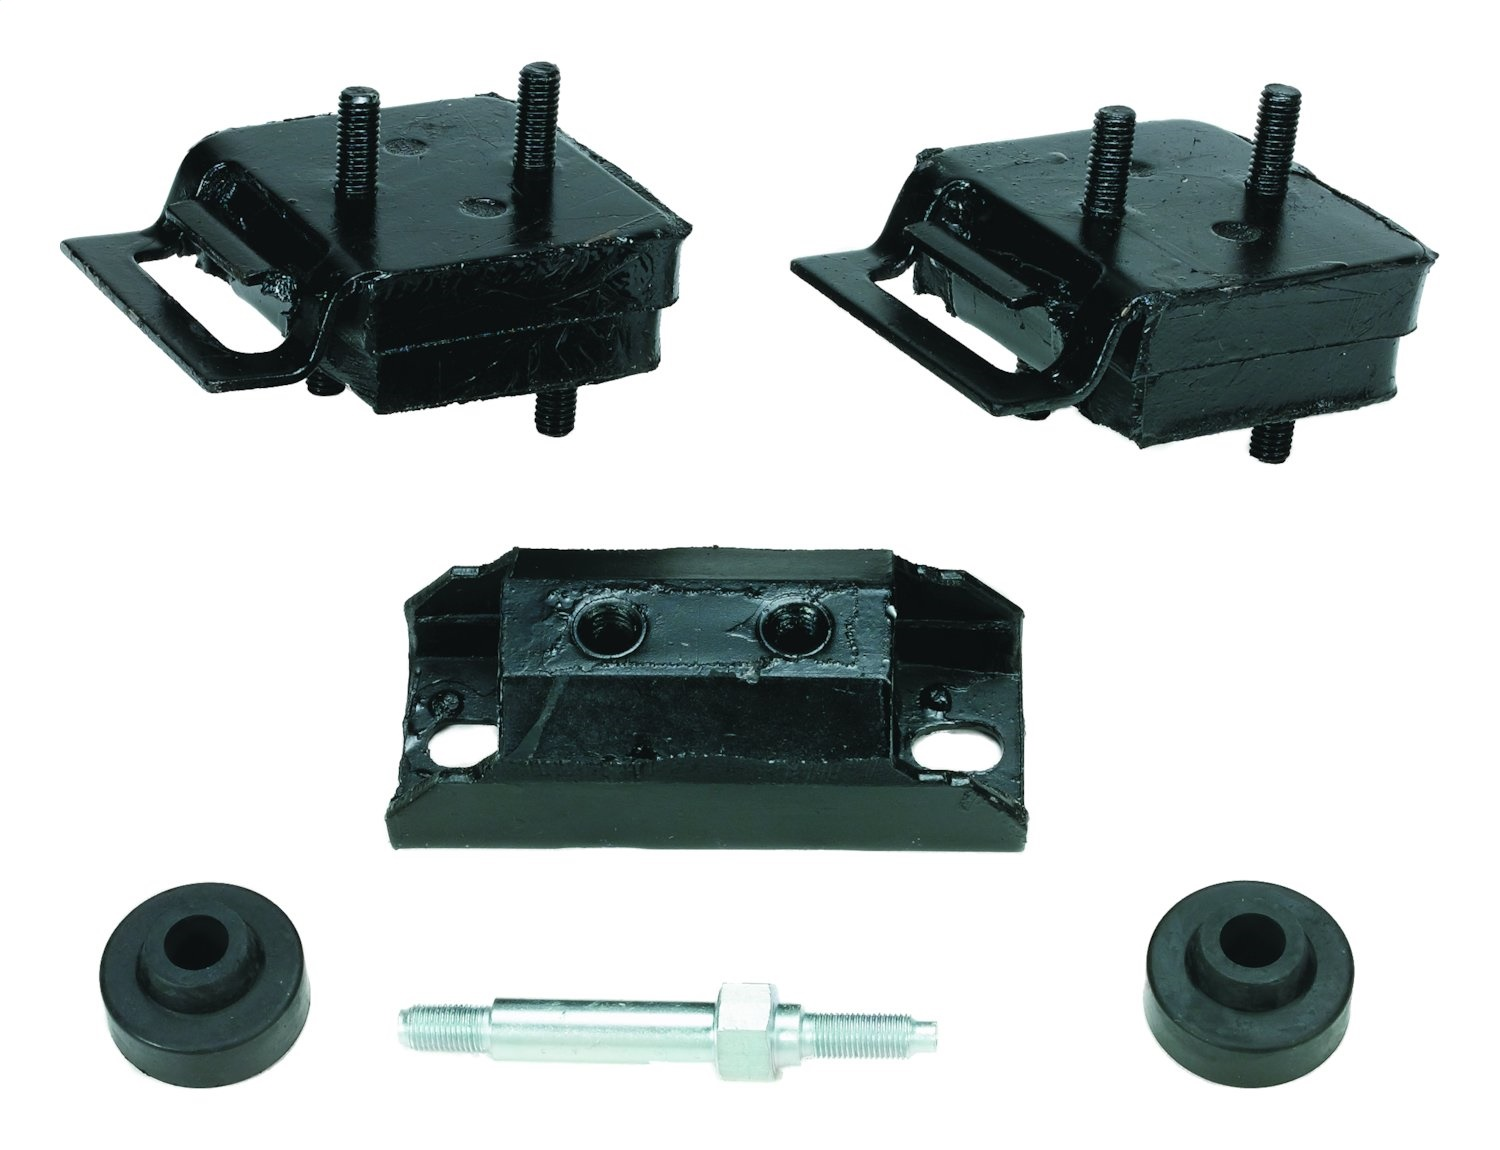 New crown automotive motor transmission mount kit set jeep for Jeep motor mount bracket